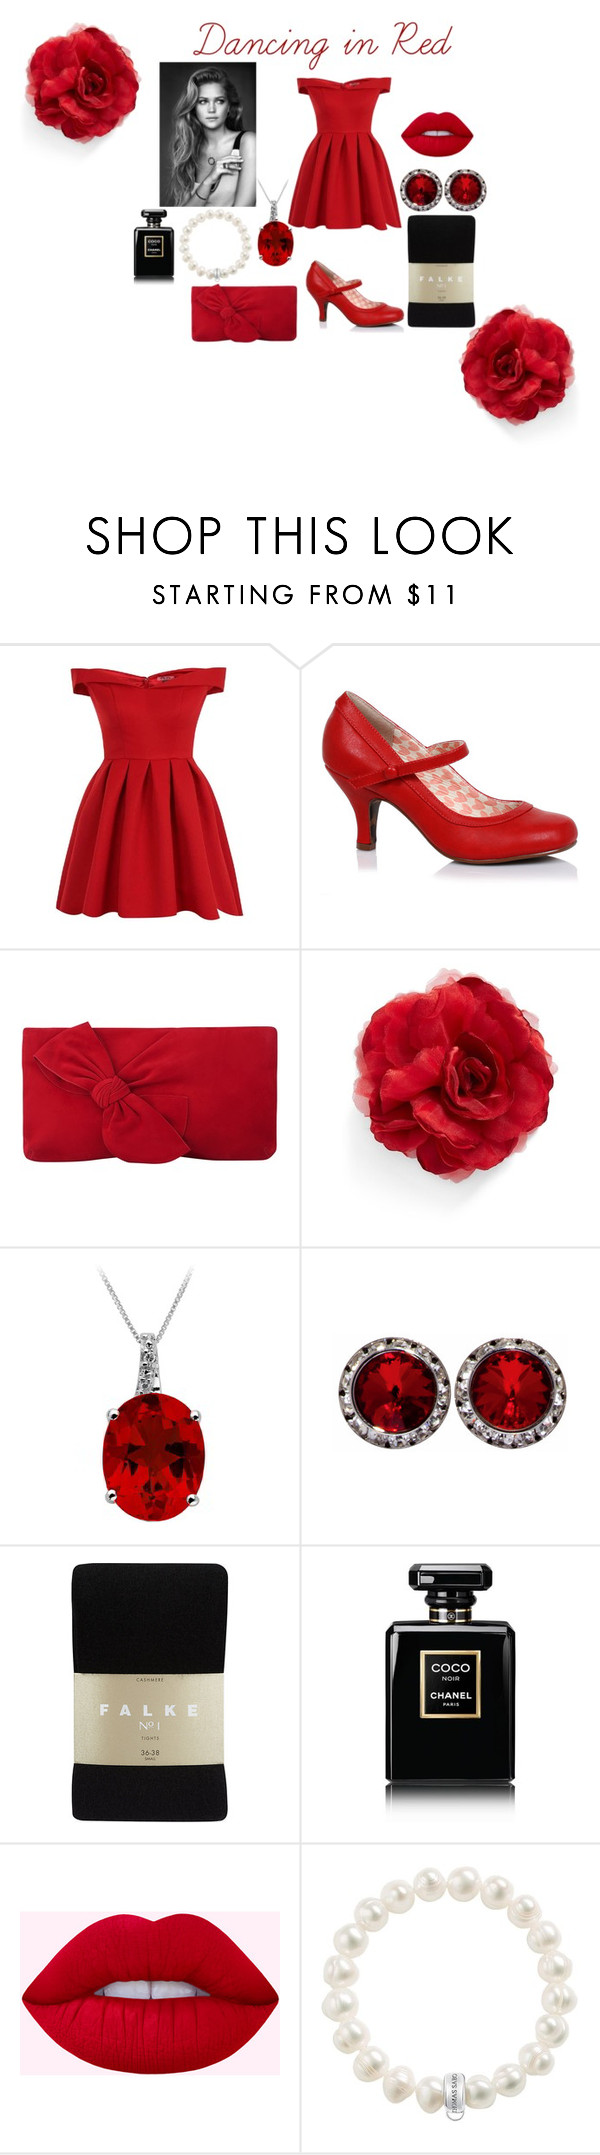 """""""Dancing in Red"""" by malika-qaraqish on Polyvore featuring Chi Chi, L.K.Bennett, Cara, Falke, Chanel and Thomas Sabo"""